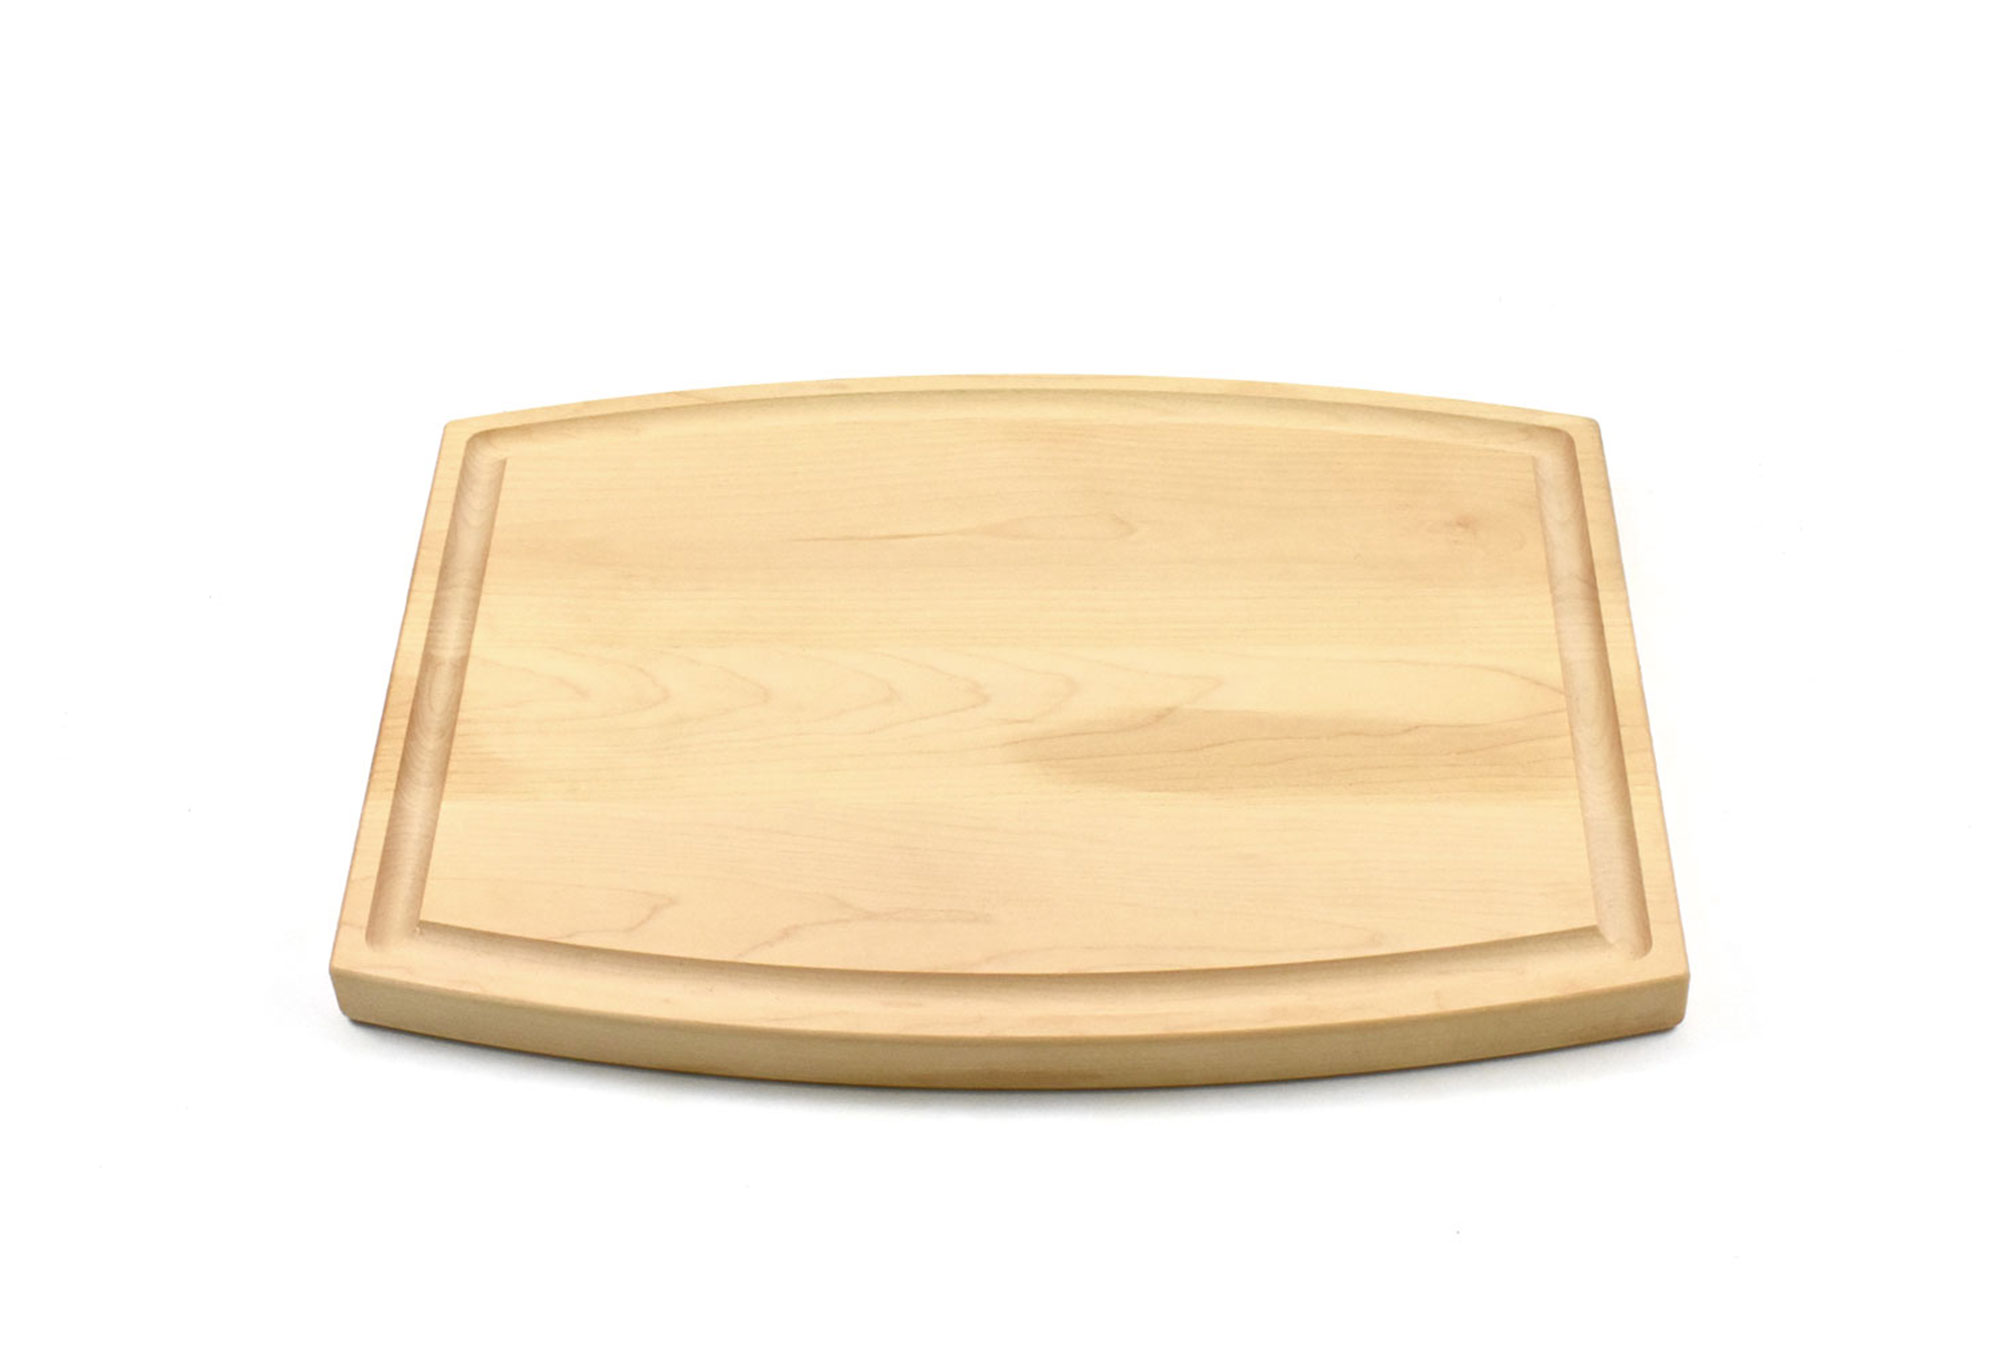 Arched wood cutting board with juice groove